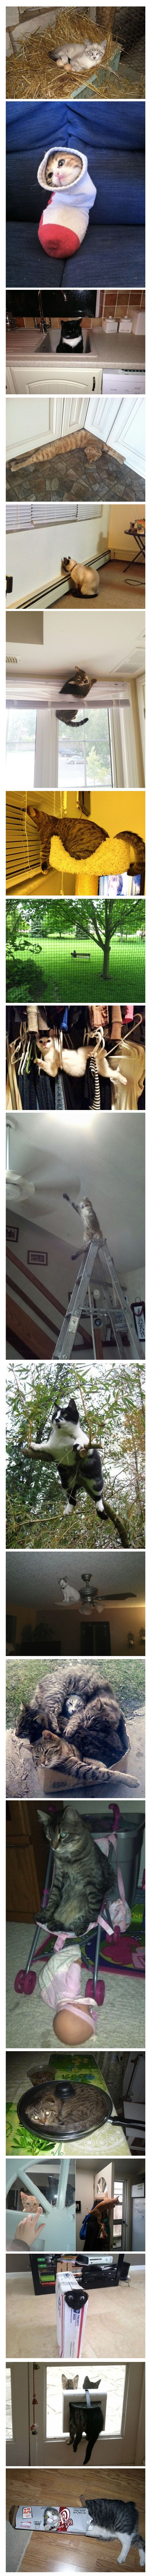 Cats are ridiculous, can't stop laughing: I Love Cats, Funny Cats, Crazy Cat, Cats Shouldn T, So Funny, Kitty, Cat Lady, Animal